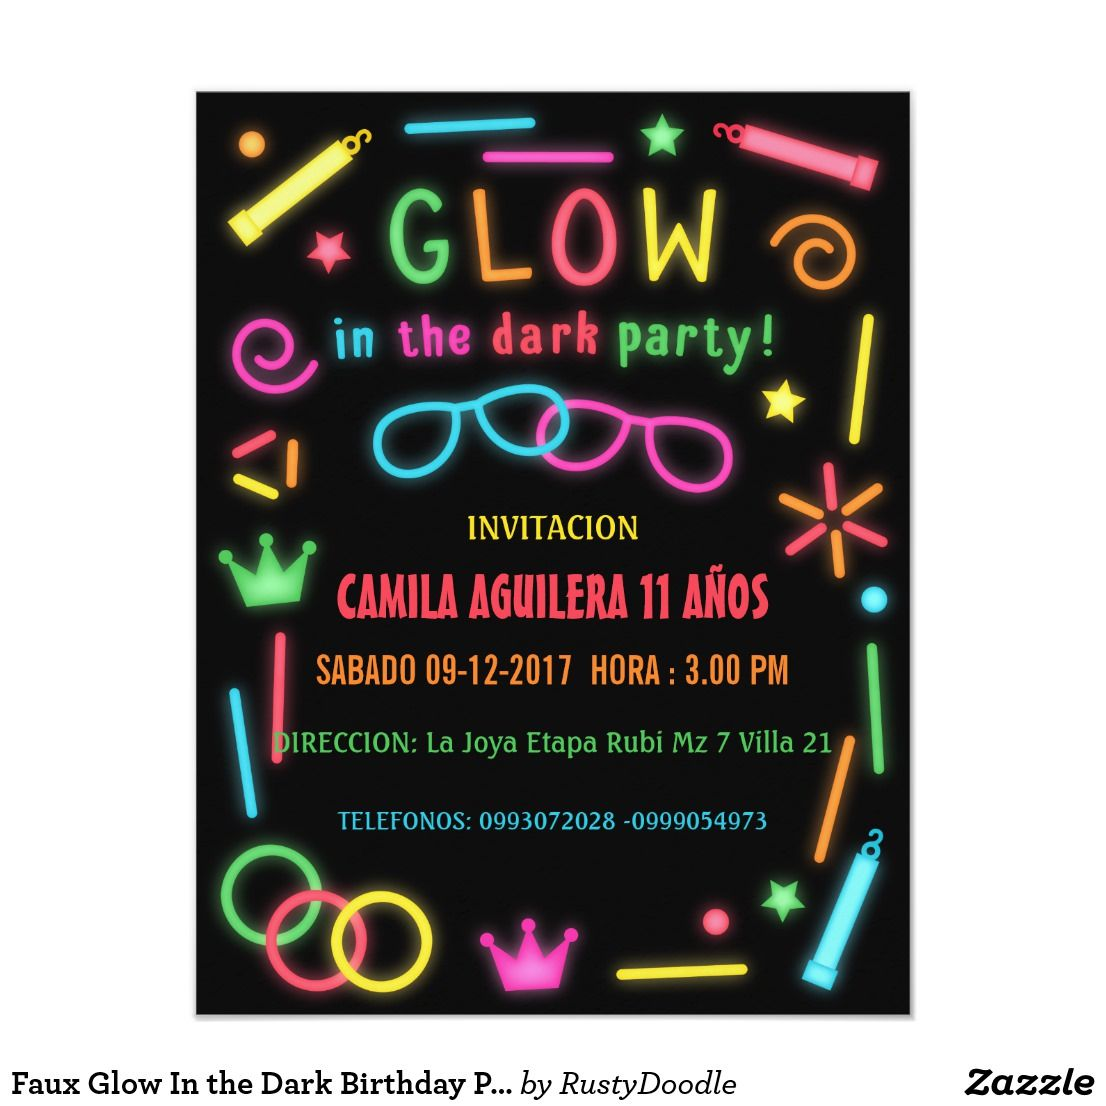 Faux Glow In the Dark Birthday Party Invitations | Party invitations ...